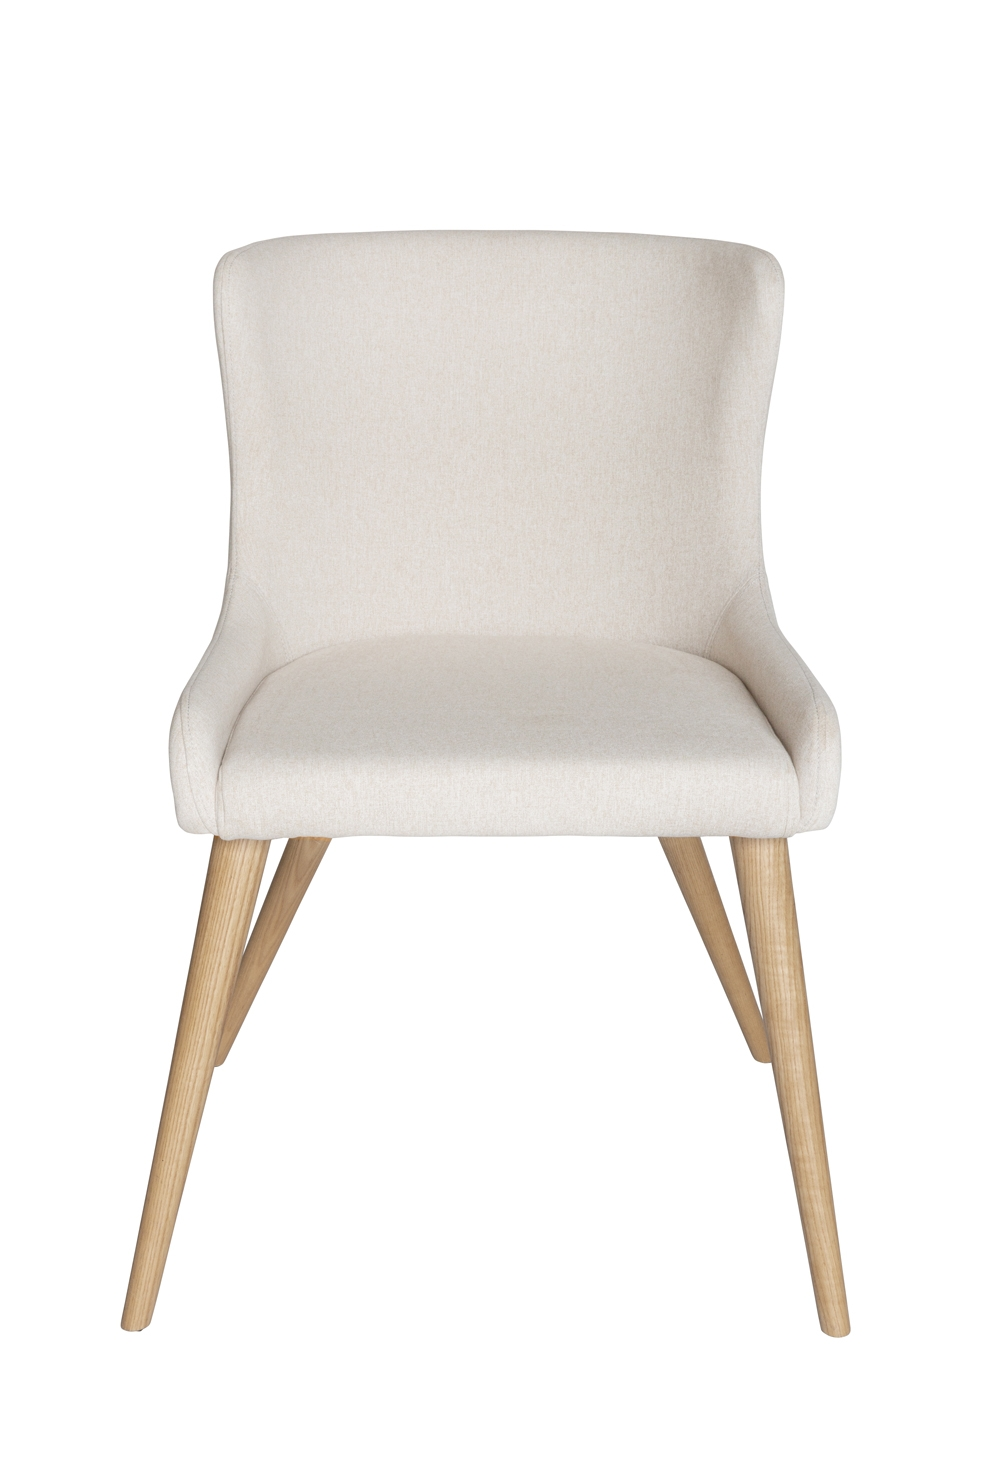 Osaka Dining Chair   Ivory Fabric   Natural Legs